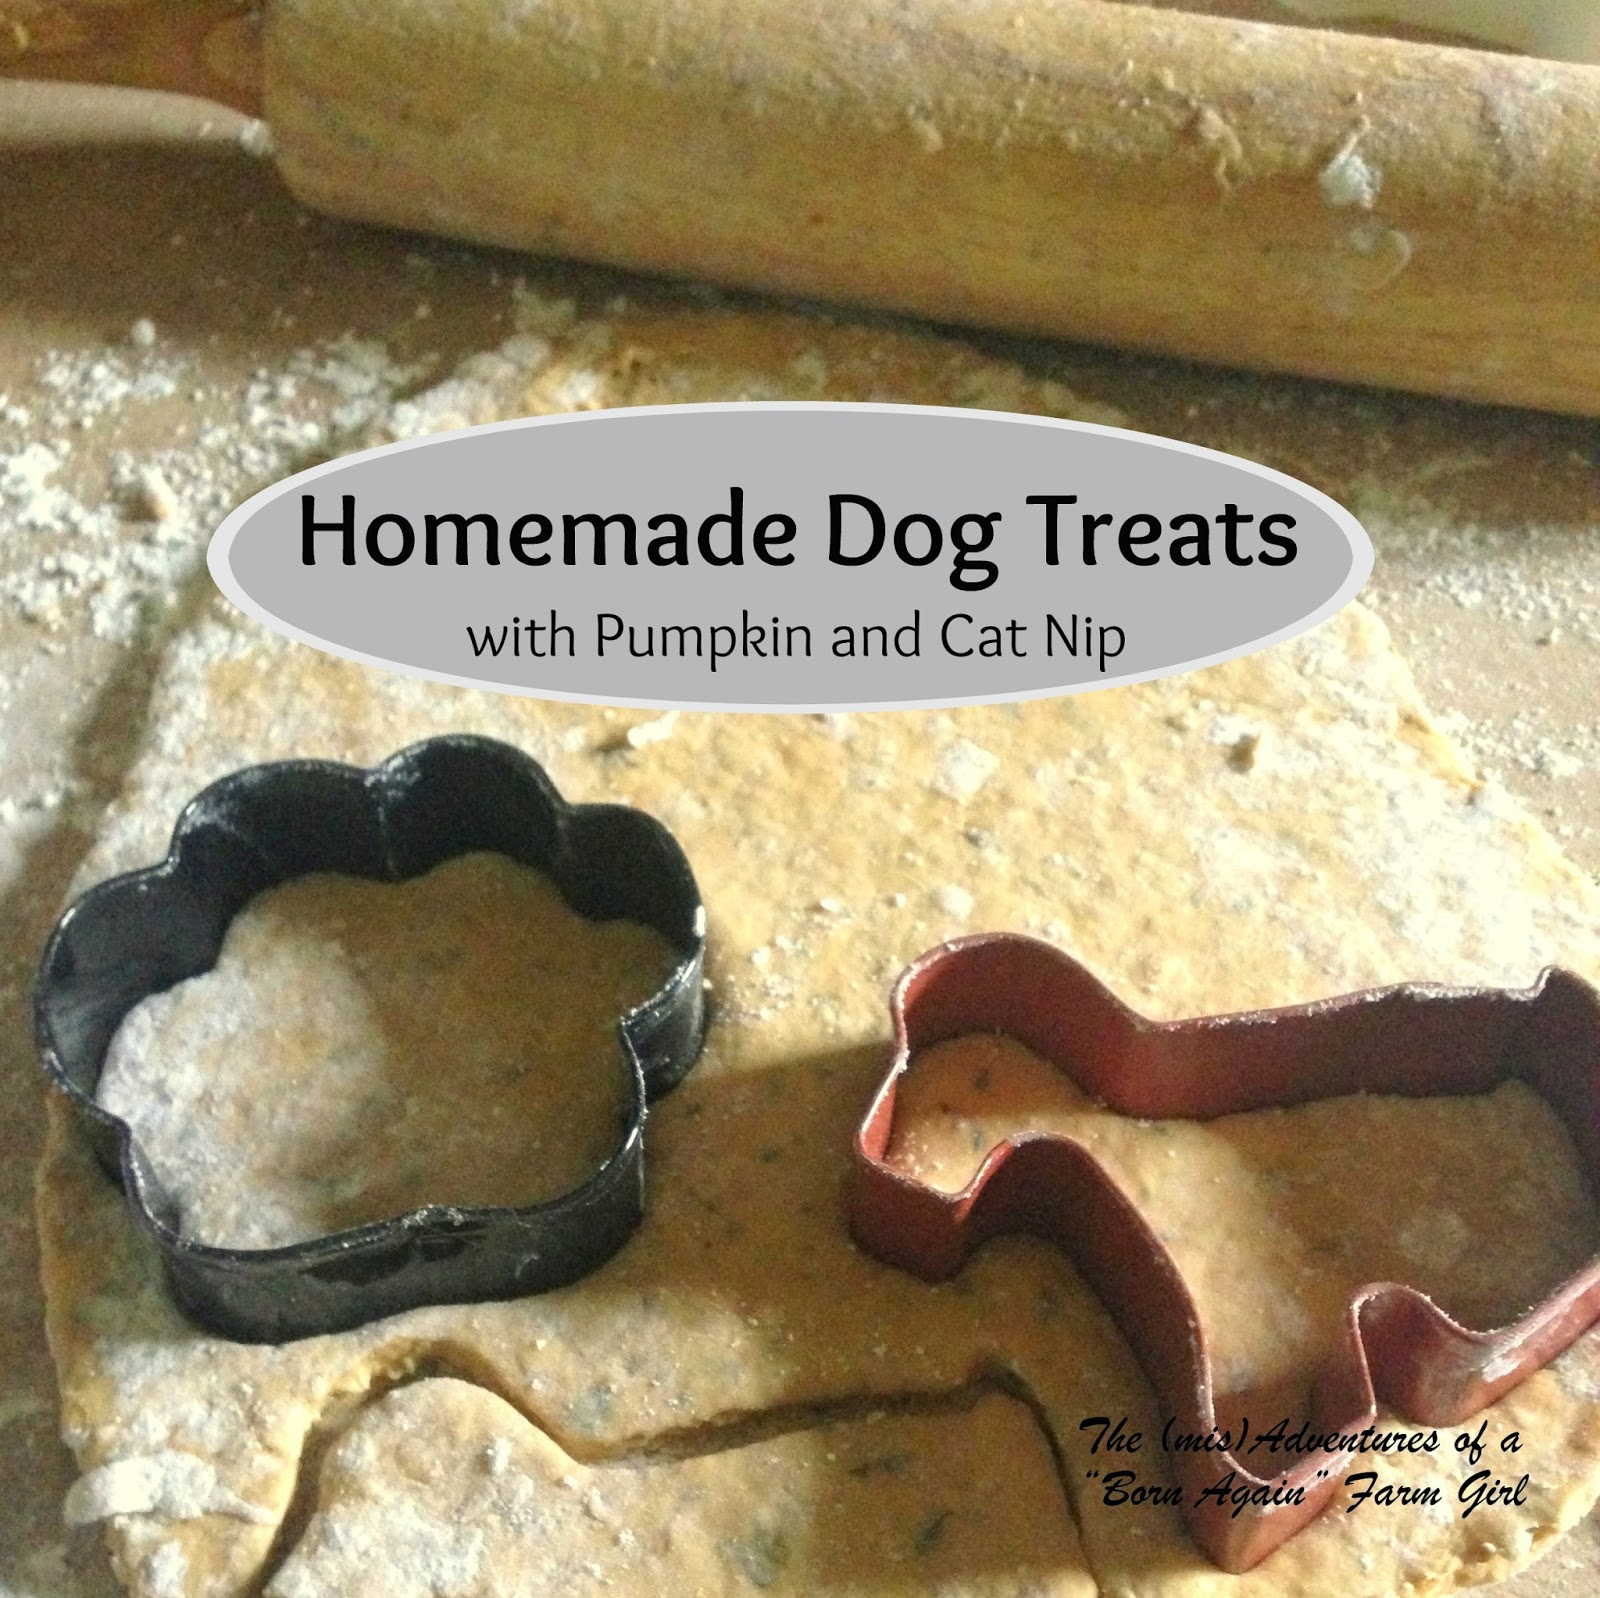 Homemade Dog Treats, with Pumpkin and Cat Nip!